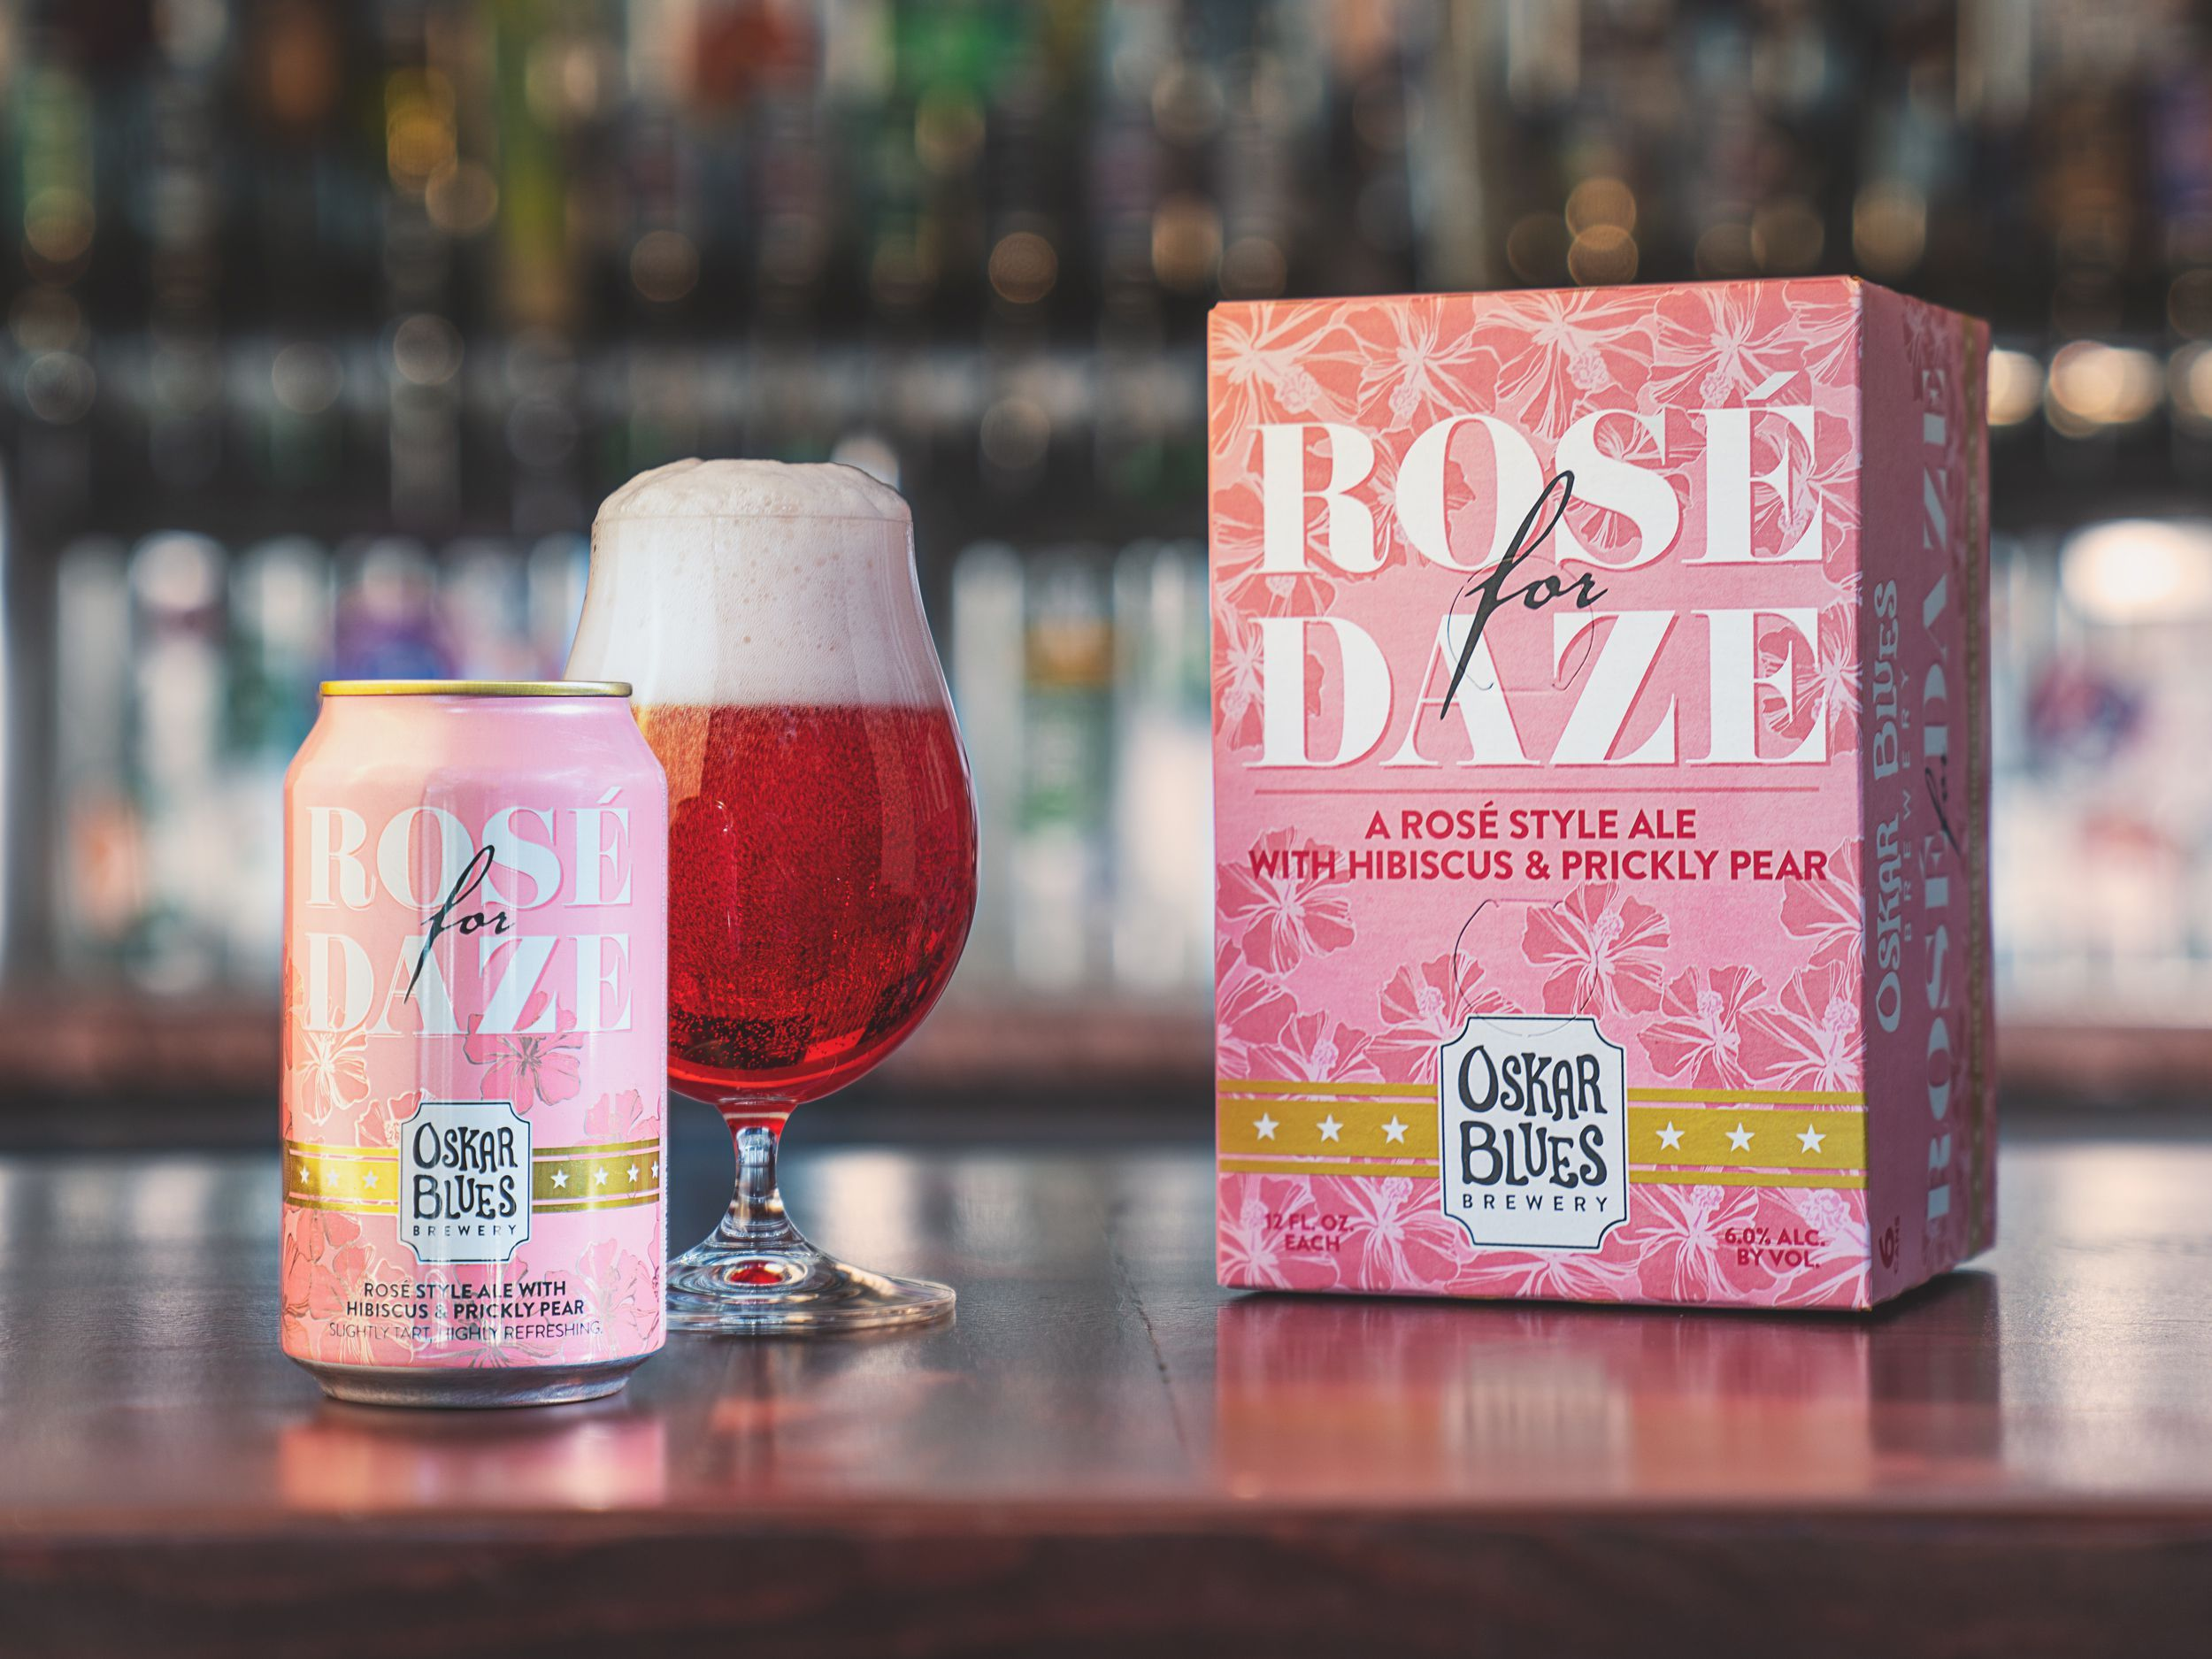 15+ Best Canned Wines To Drink This Season - Top Canned Wines